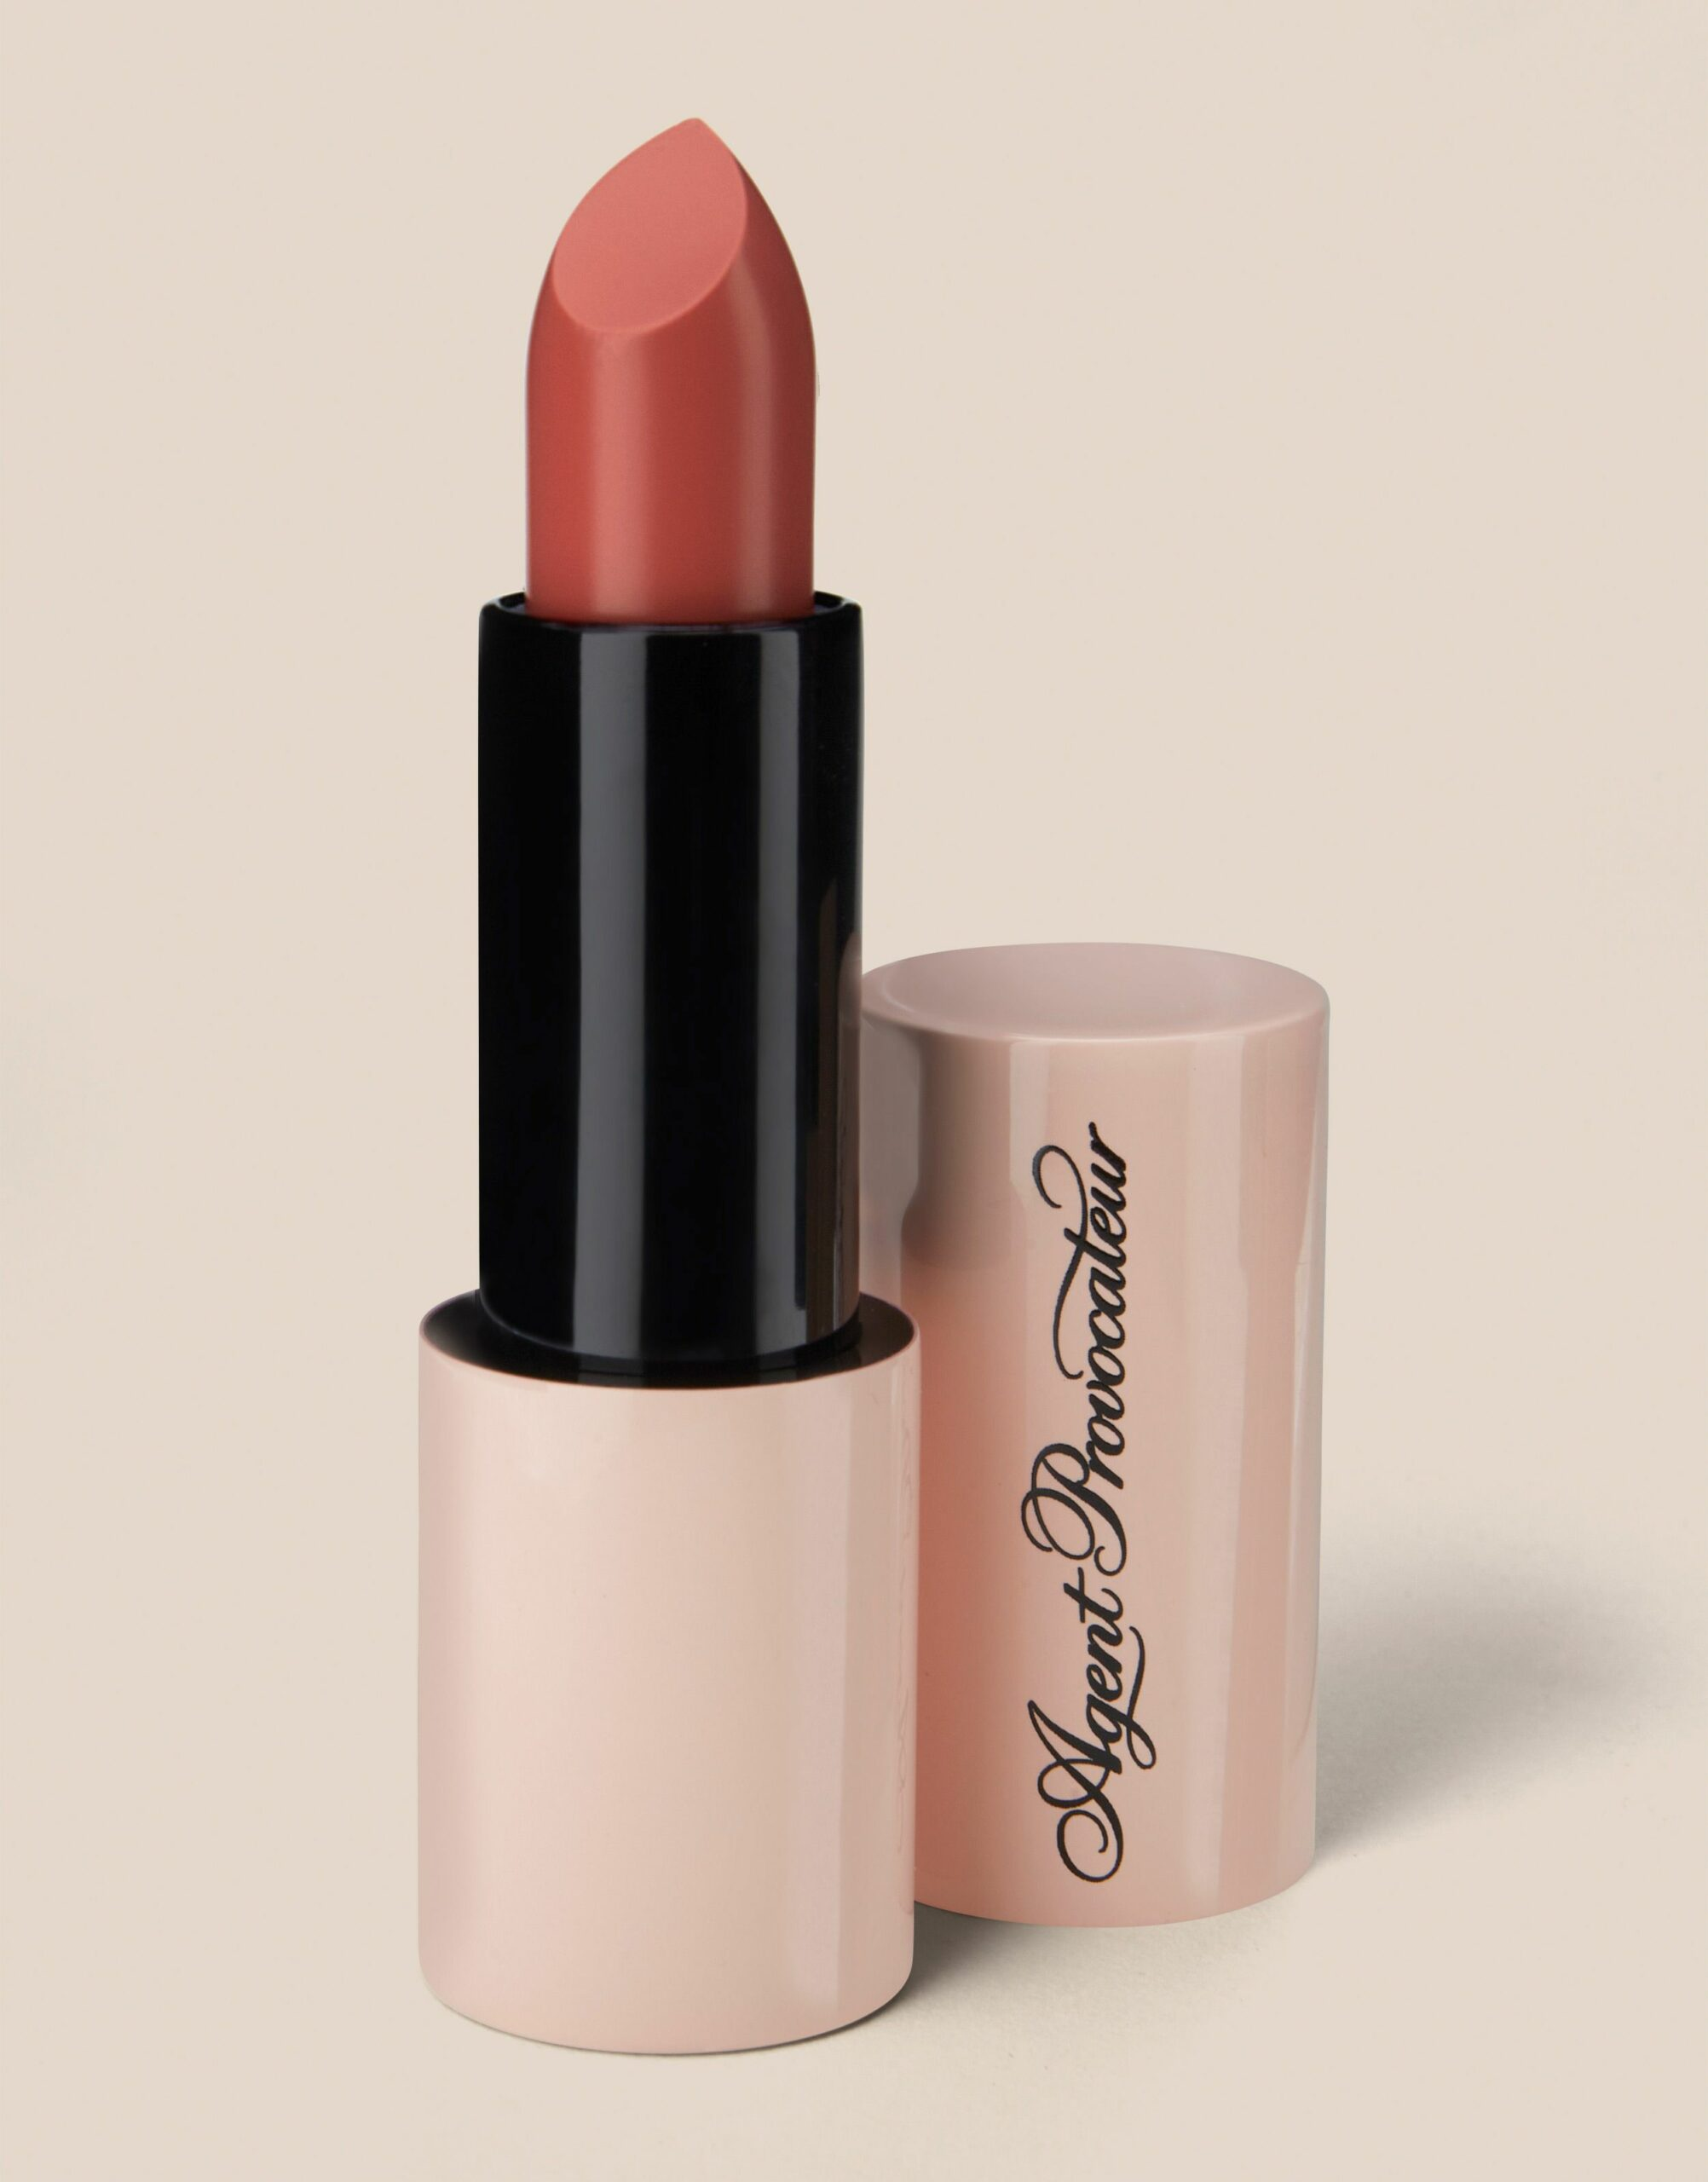 Lacy Luminous Lipstick